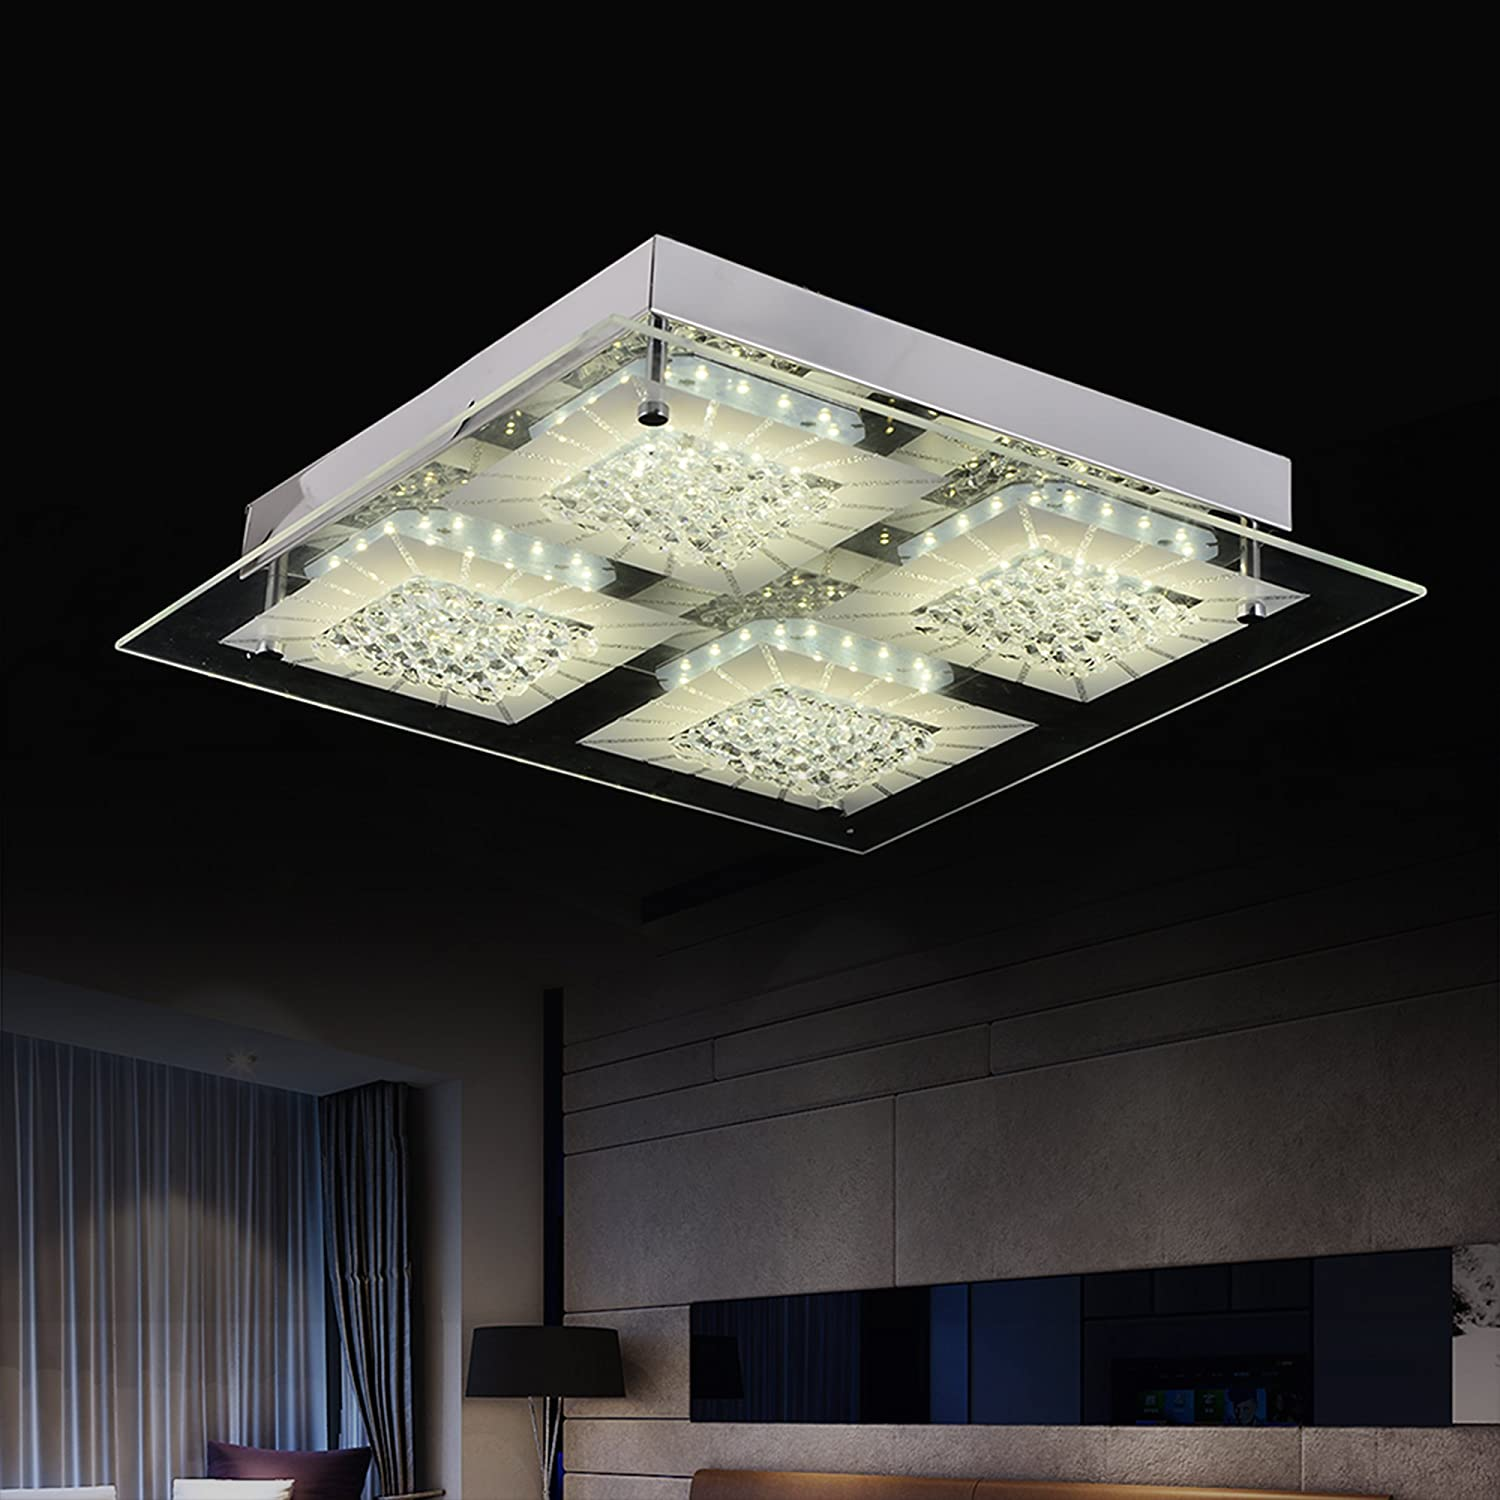 AUDIAN Flush Mount Ceiling Light Ceiling Lamp Modern K9 Crystal Bead Ceiling Flush Mount Dimmable LED 24W (180W Incandescent Bulb Equivalent)14.2inch 4000K for Gangway Corridor Bedroom Bathroom